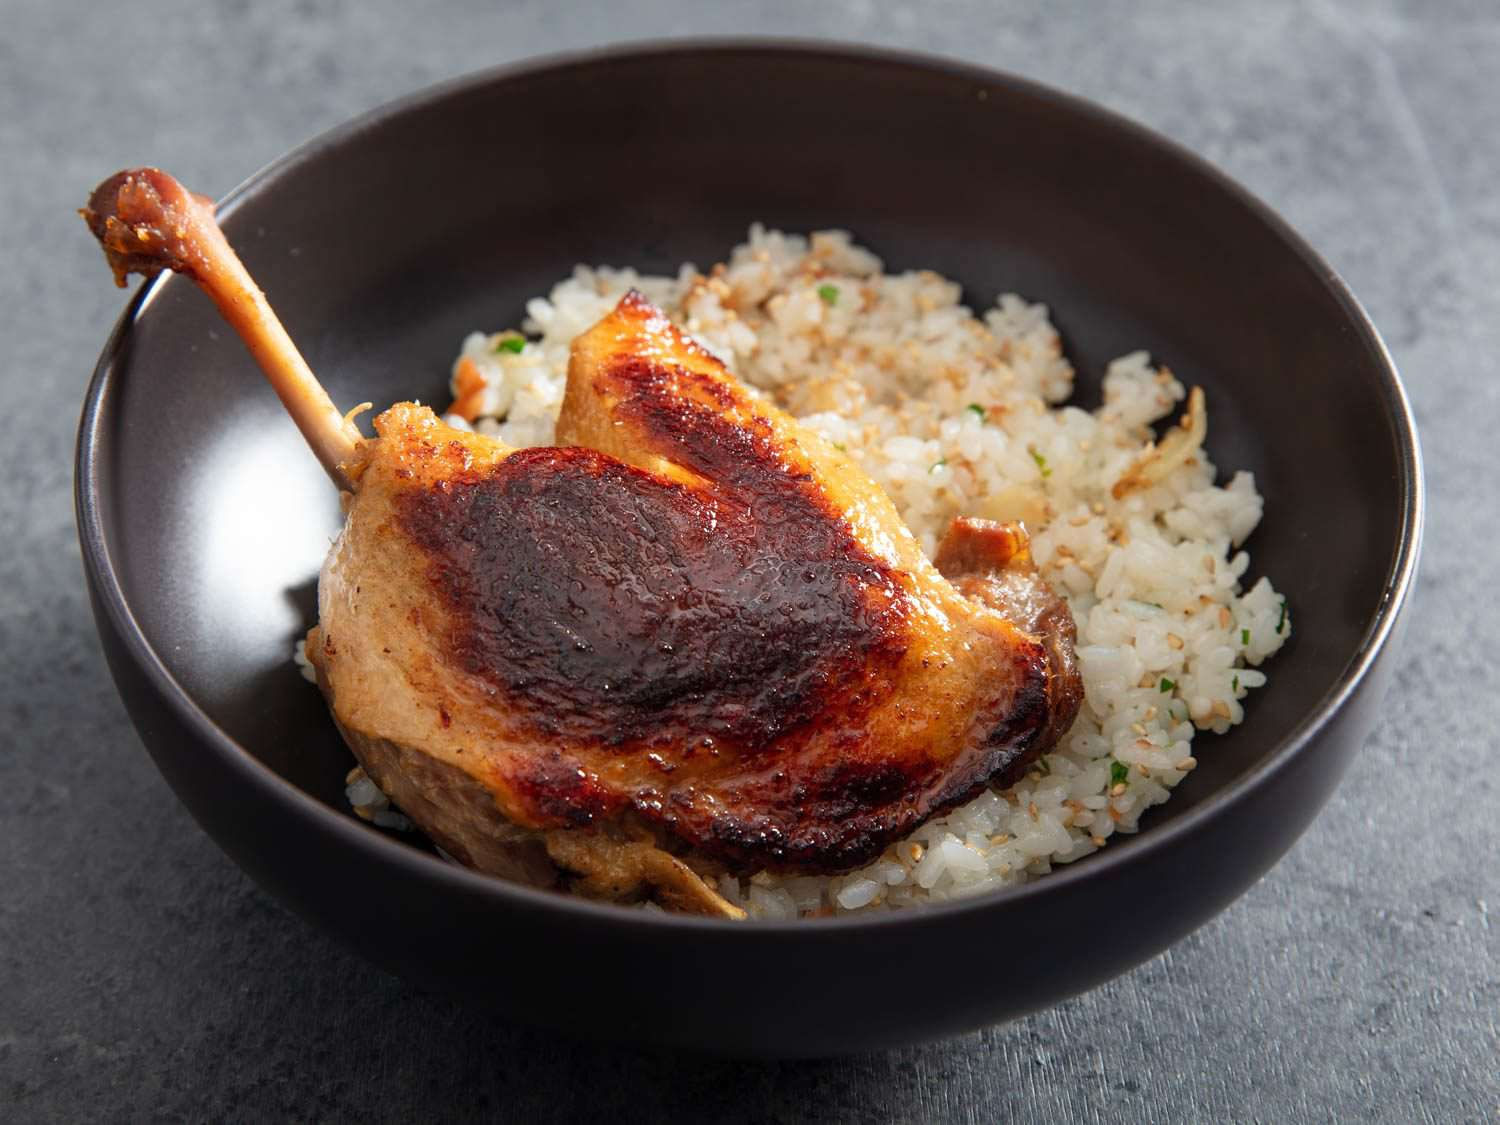 Closeup of a bowl with a crisped leg of koji duck confit over rice.